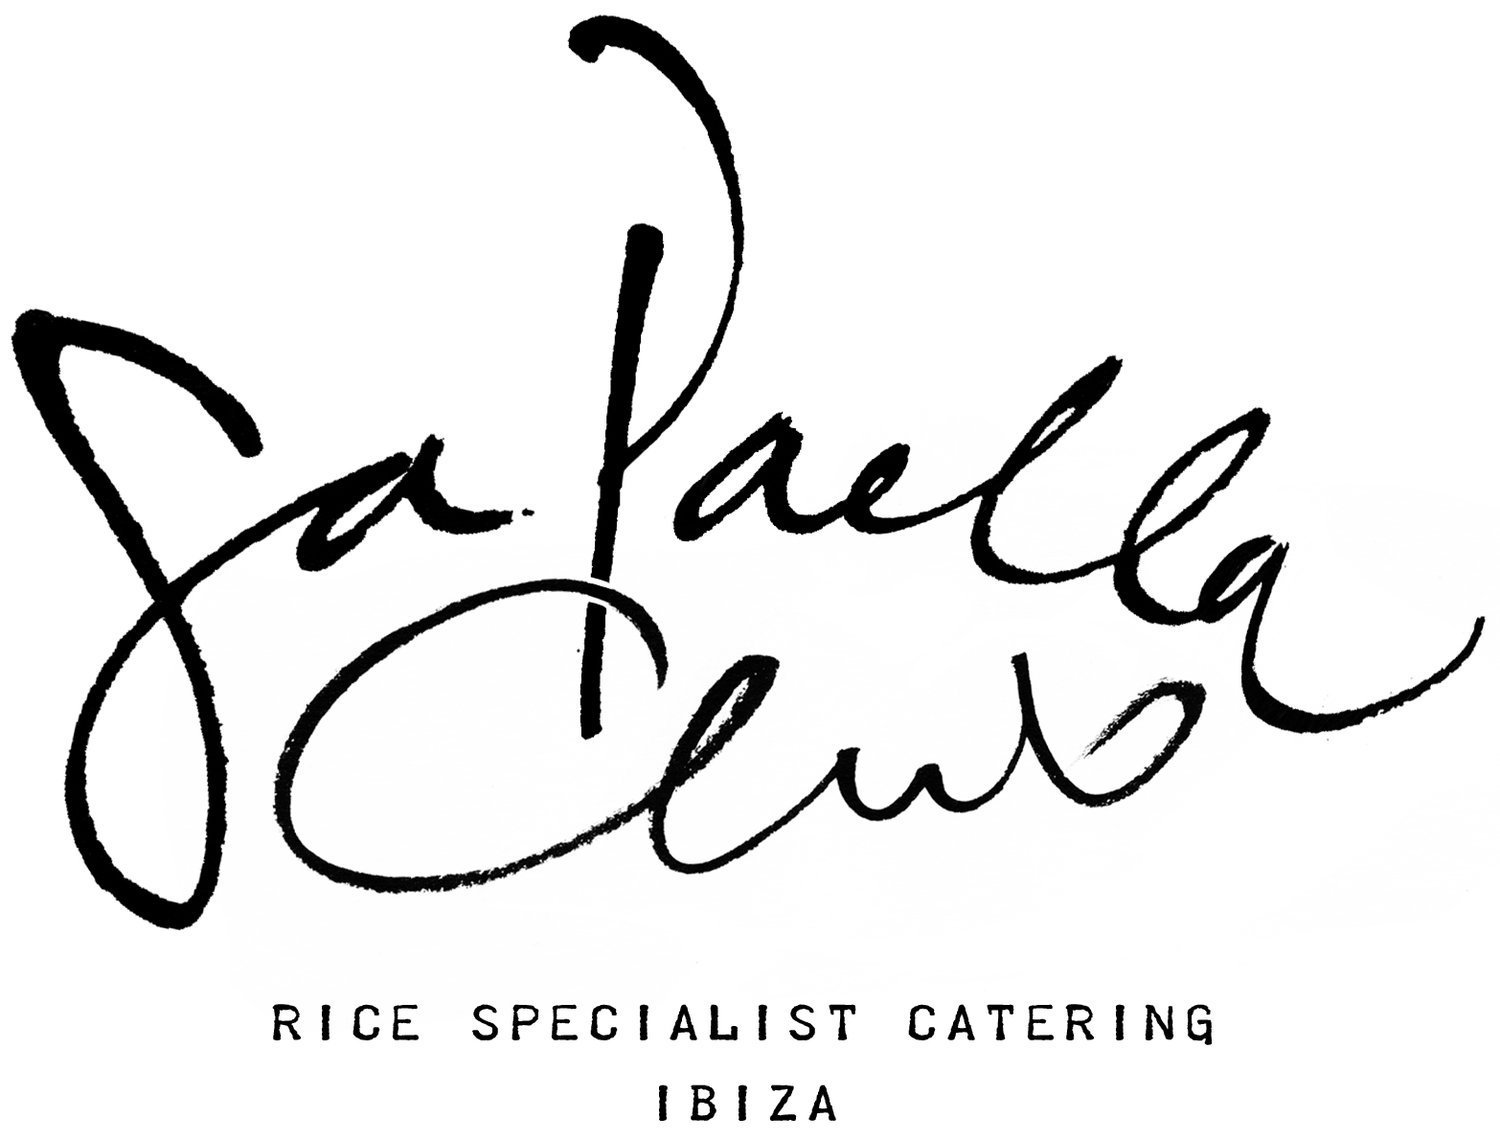 Sa paella club Ibiza - Catering Ibiza Service - Private Chef Ibiza - Ibiza Wedding Caterers - VIP catering Ibiza